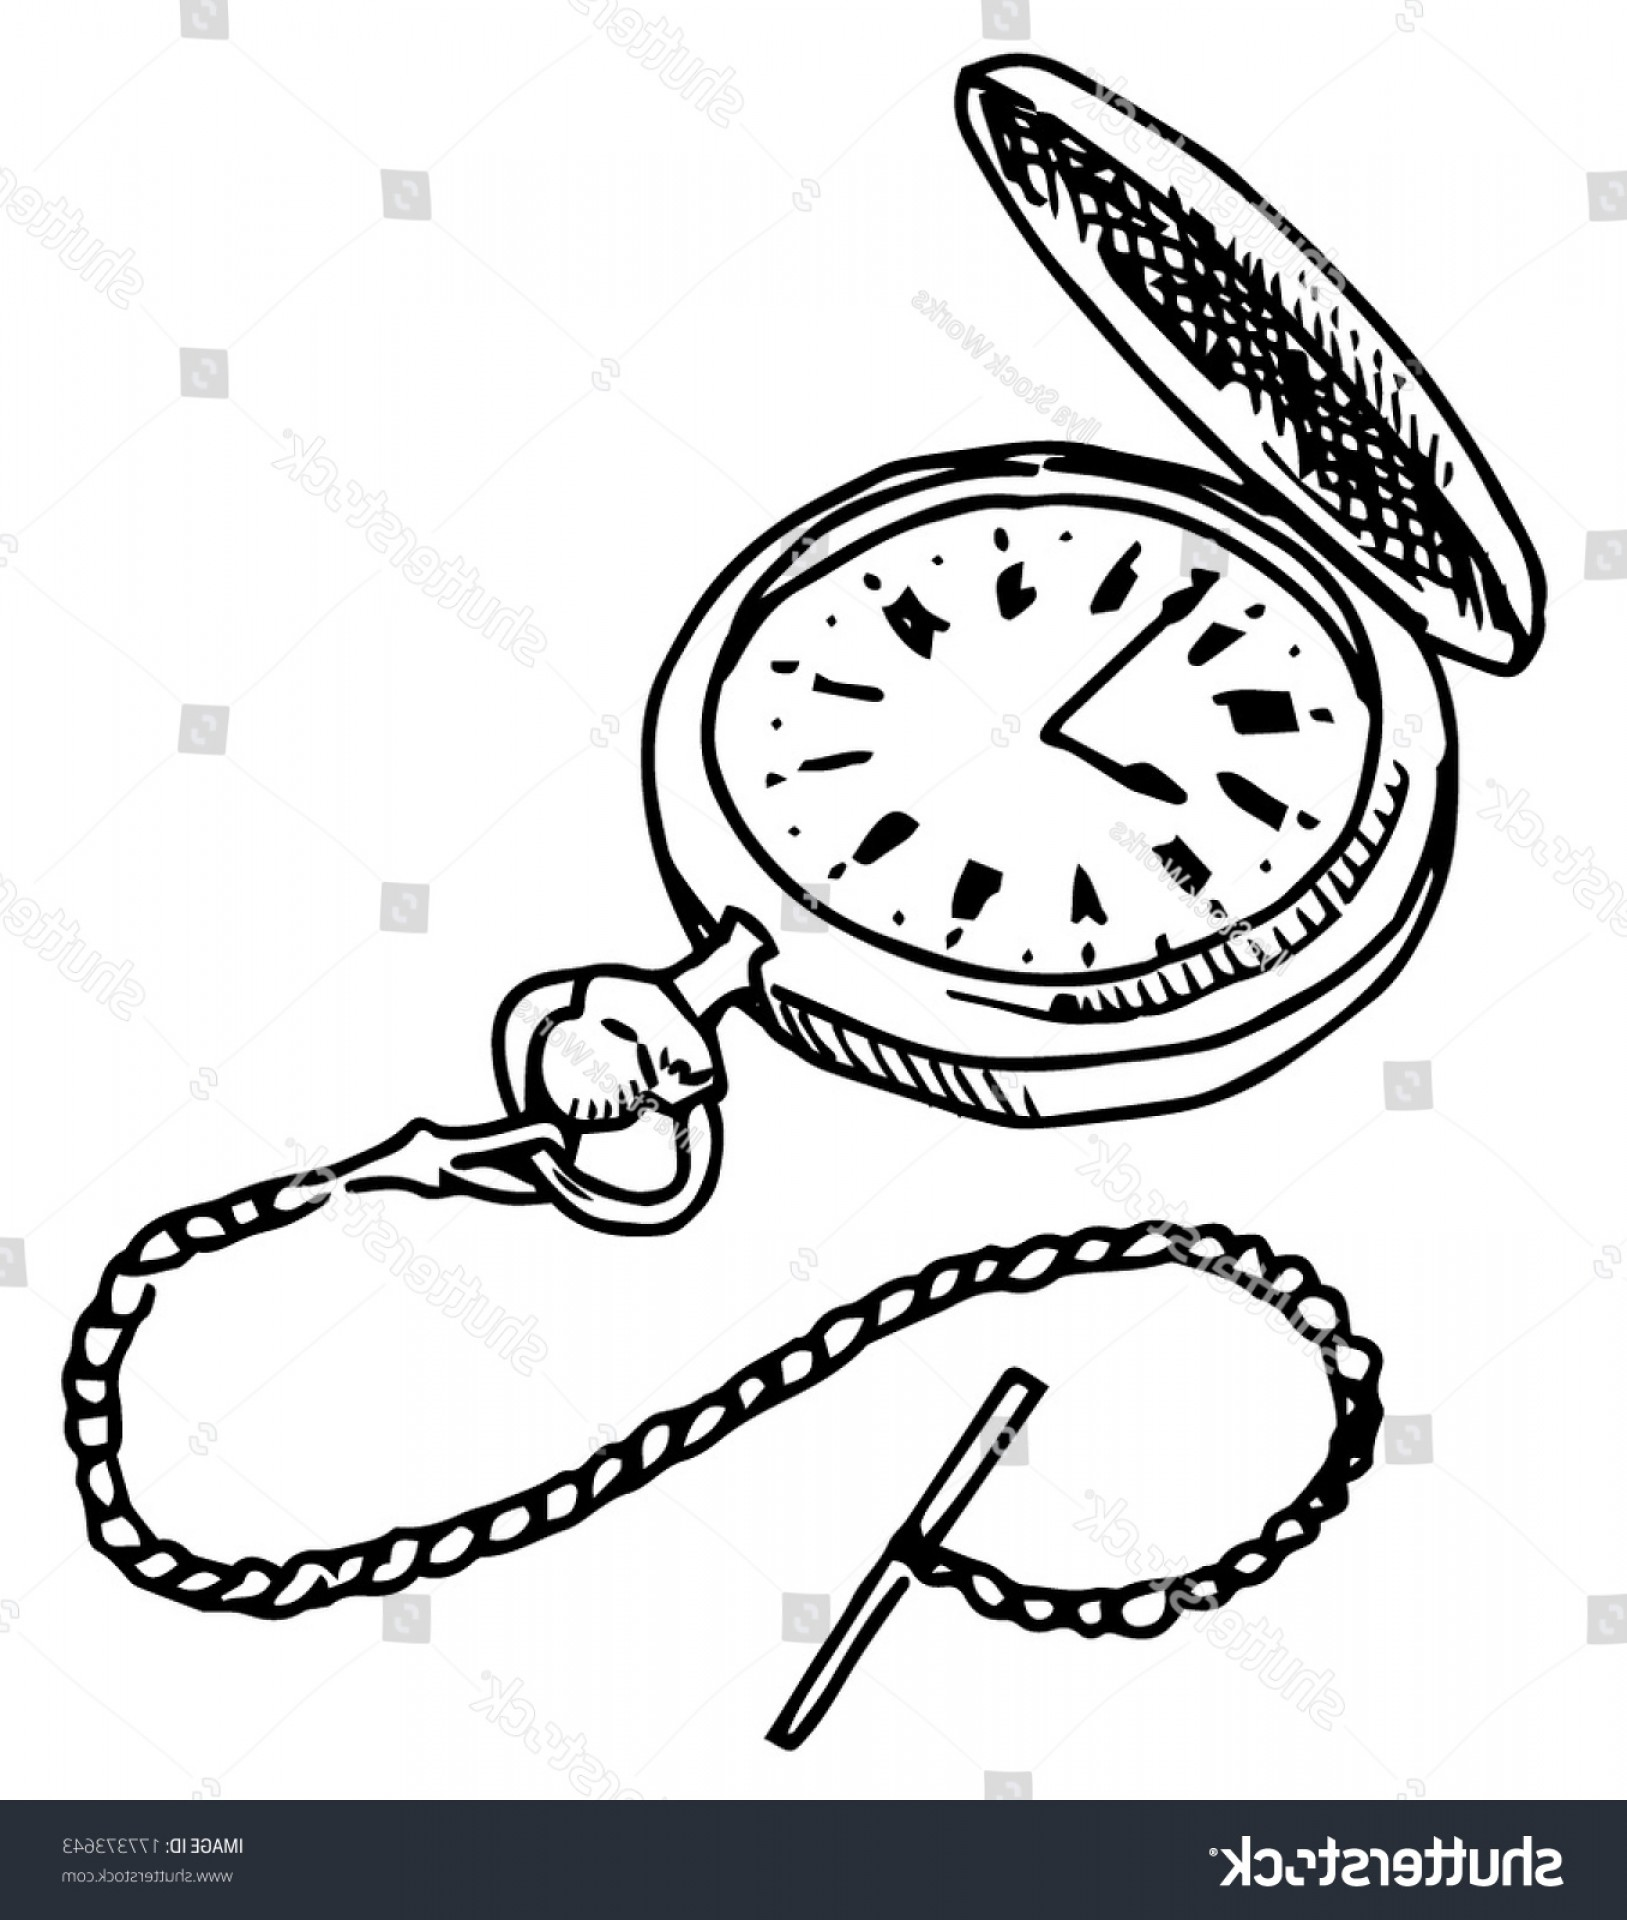 1627x1920 Pocket Watch Vector Drawing On White Lazttweet